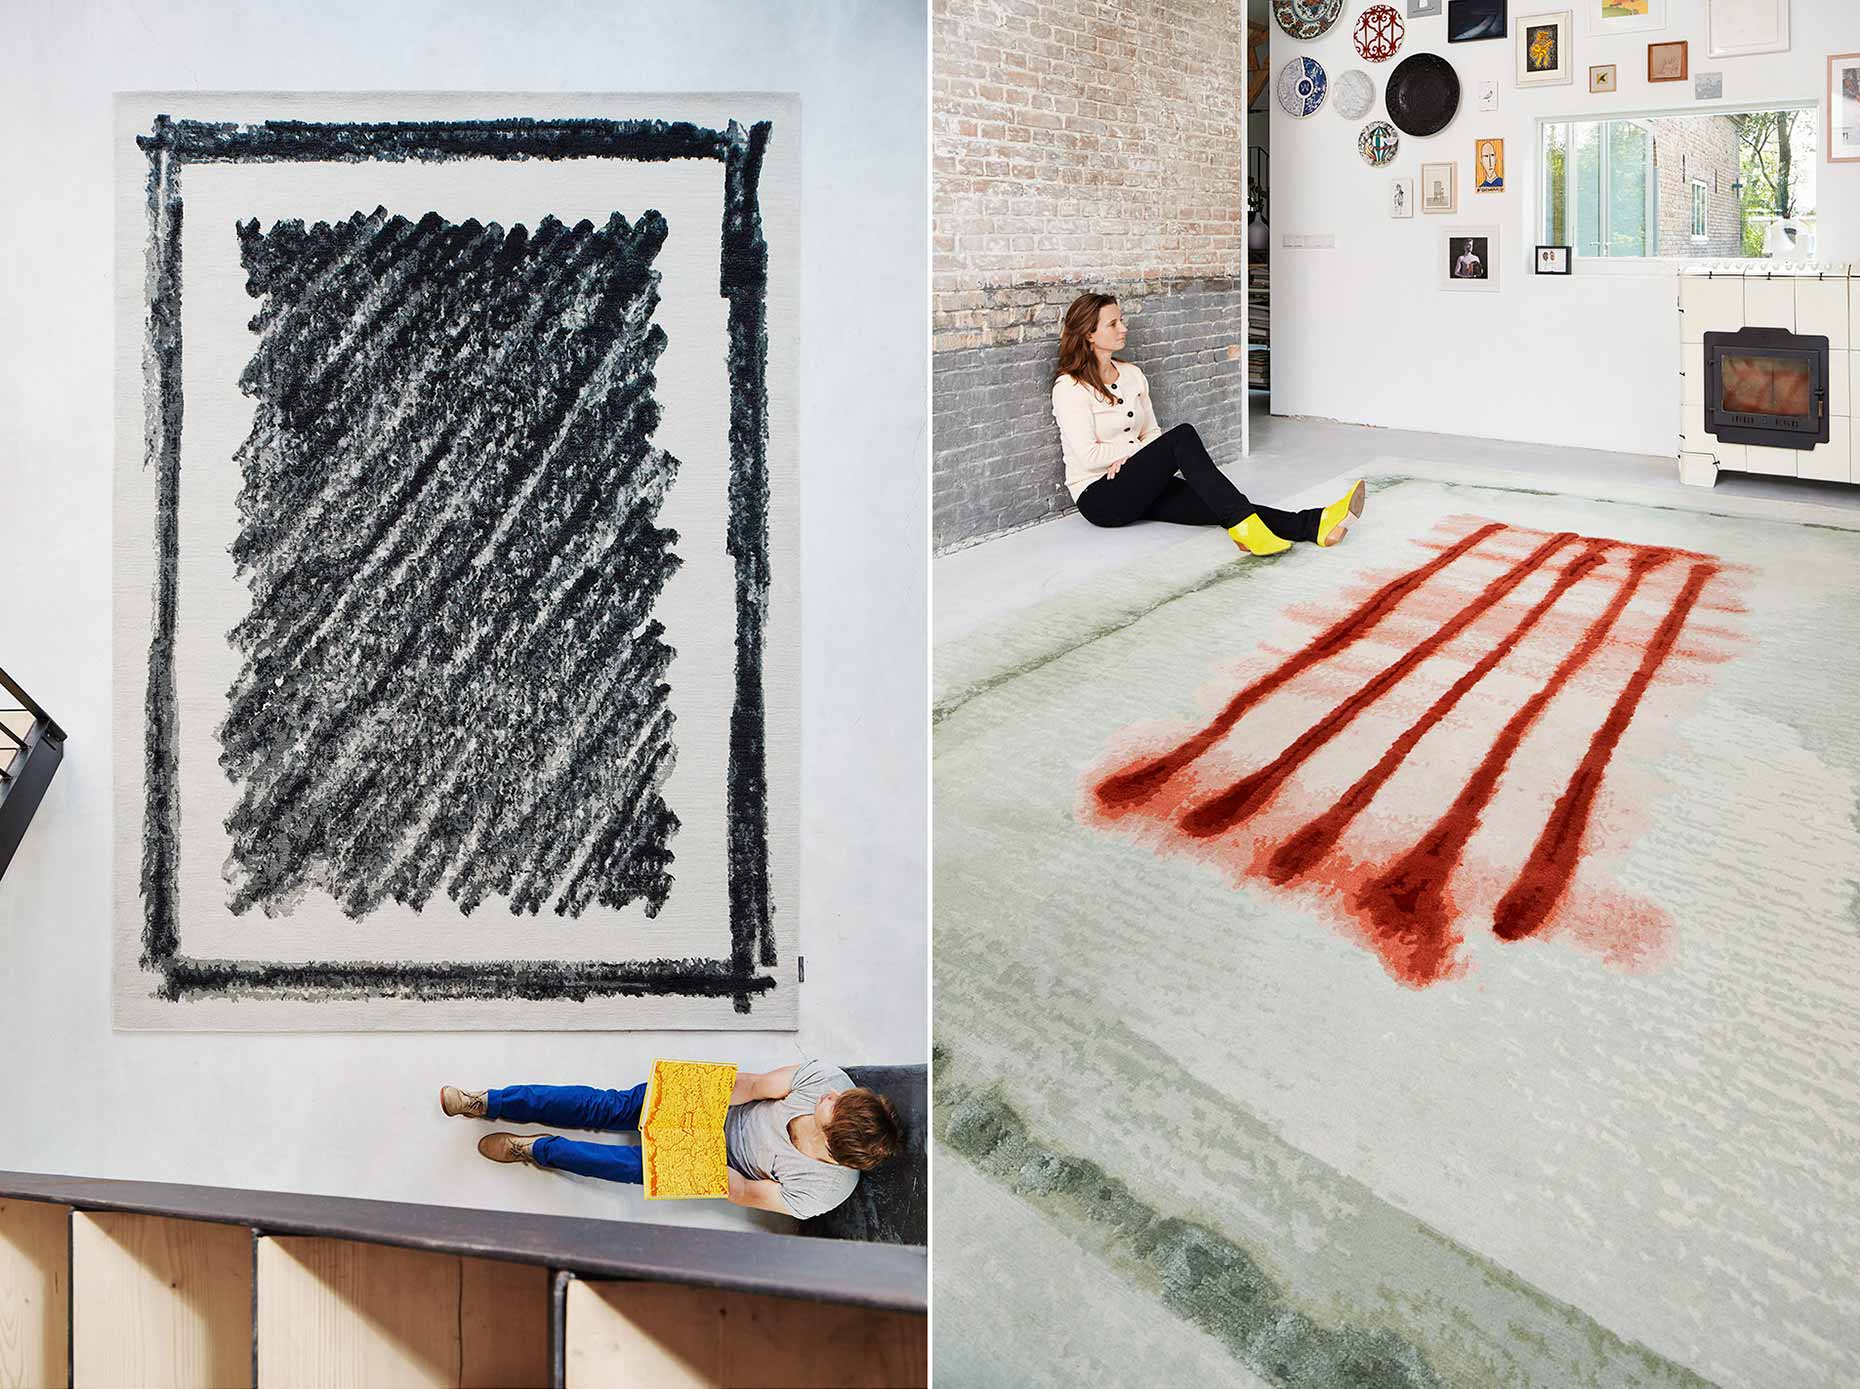 Dutch designers Kiki van Eijk and Joost van Bleiswijk for Ice international carpets